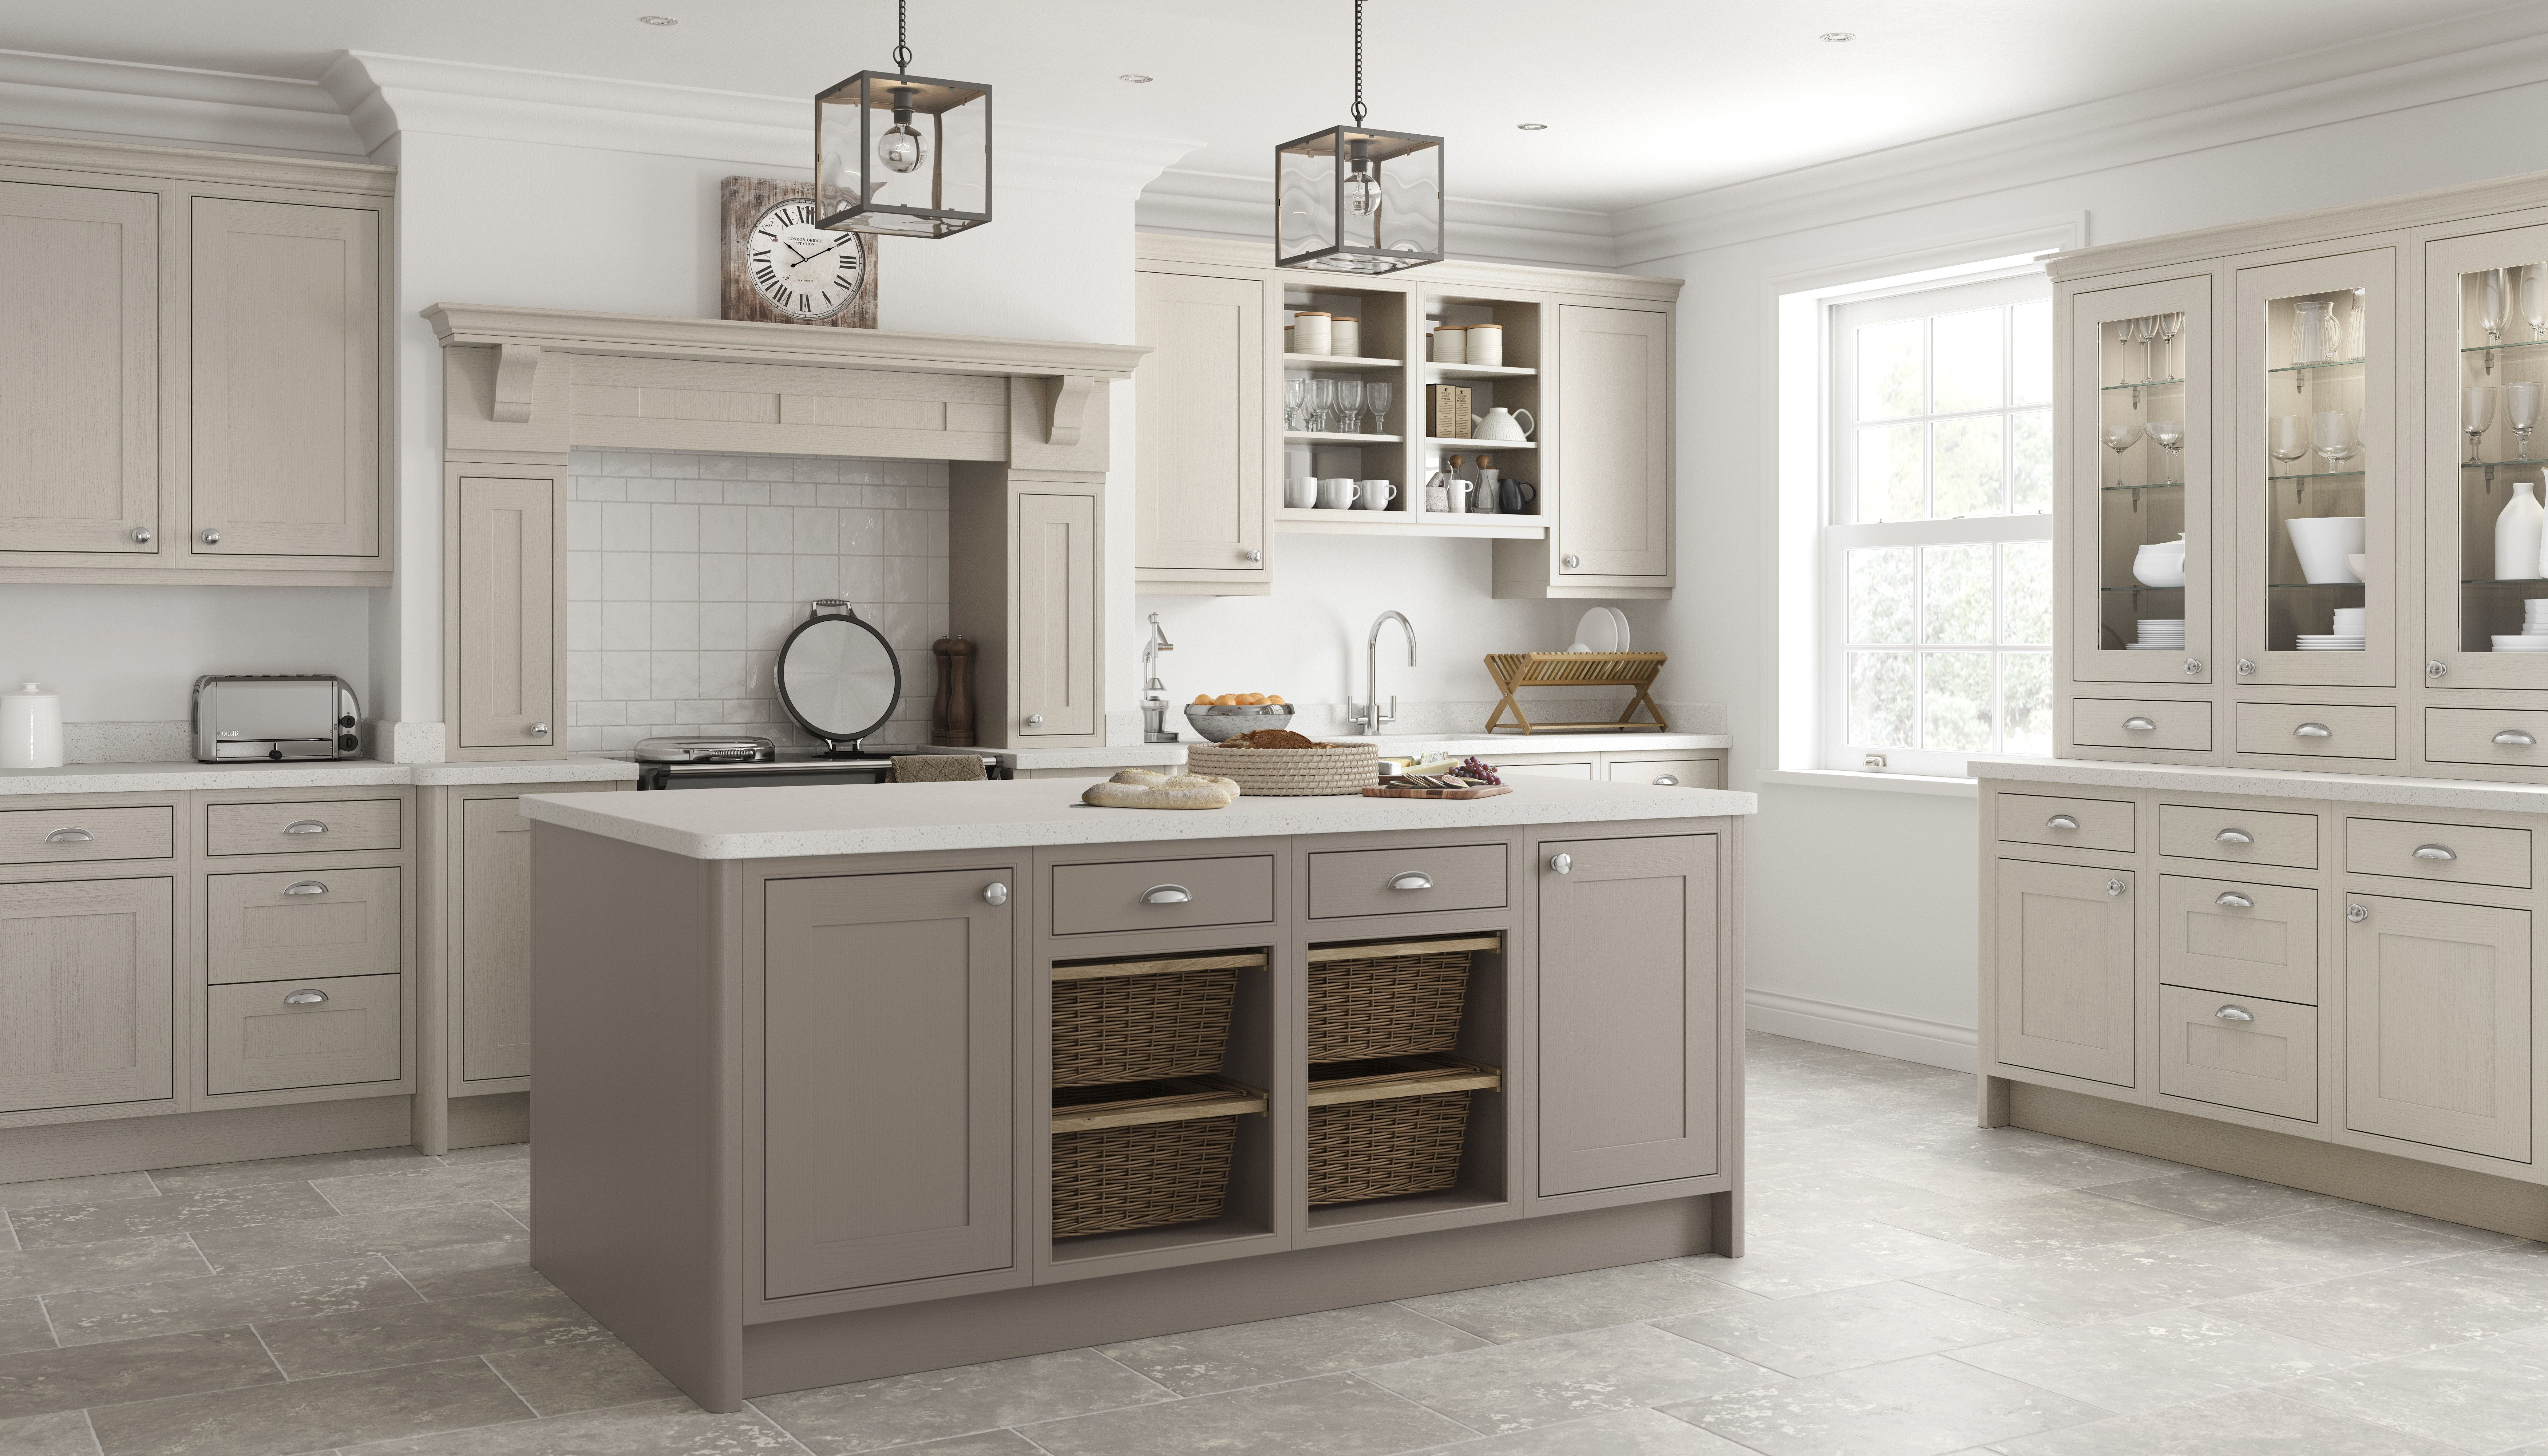 Caffe Latte Pumice Shaker Kitchen Bespoke Kitchens Taupe Kitchen Kitchen Fittings